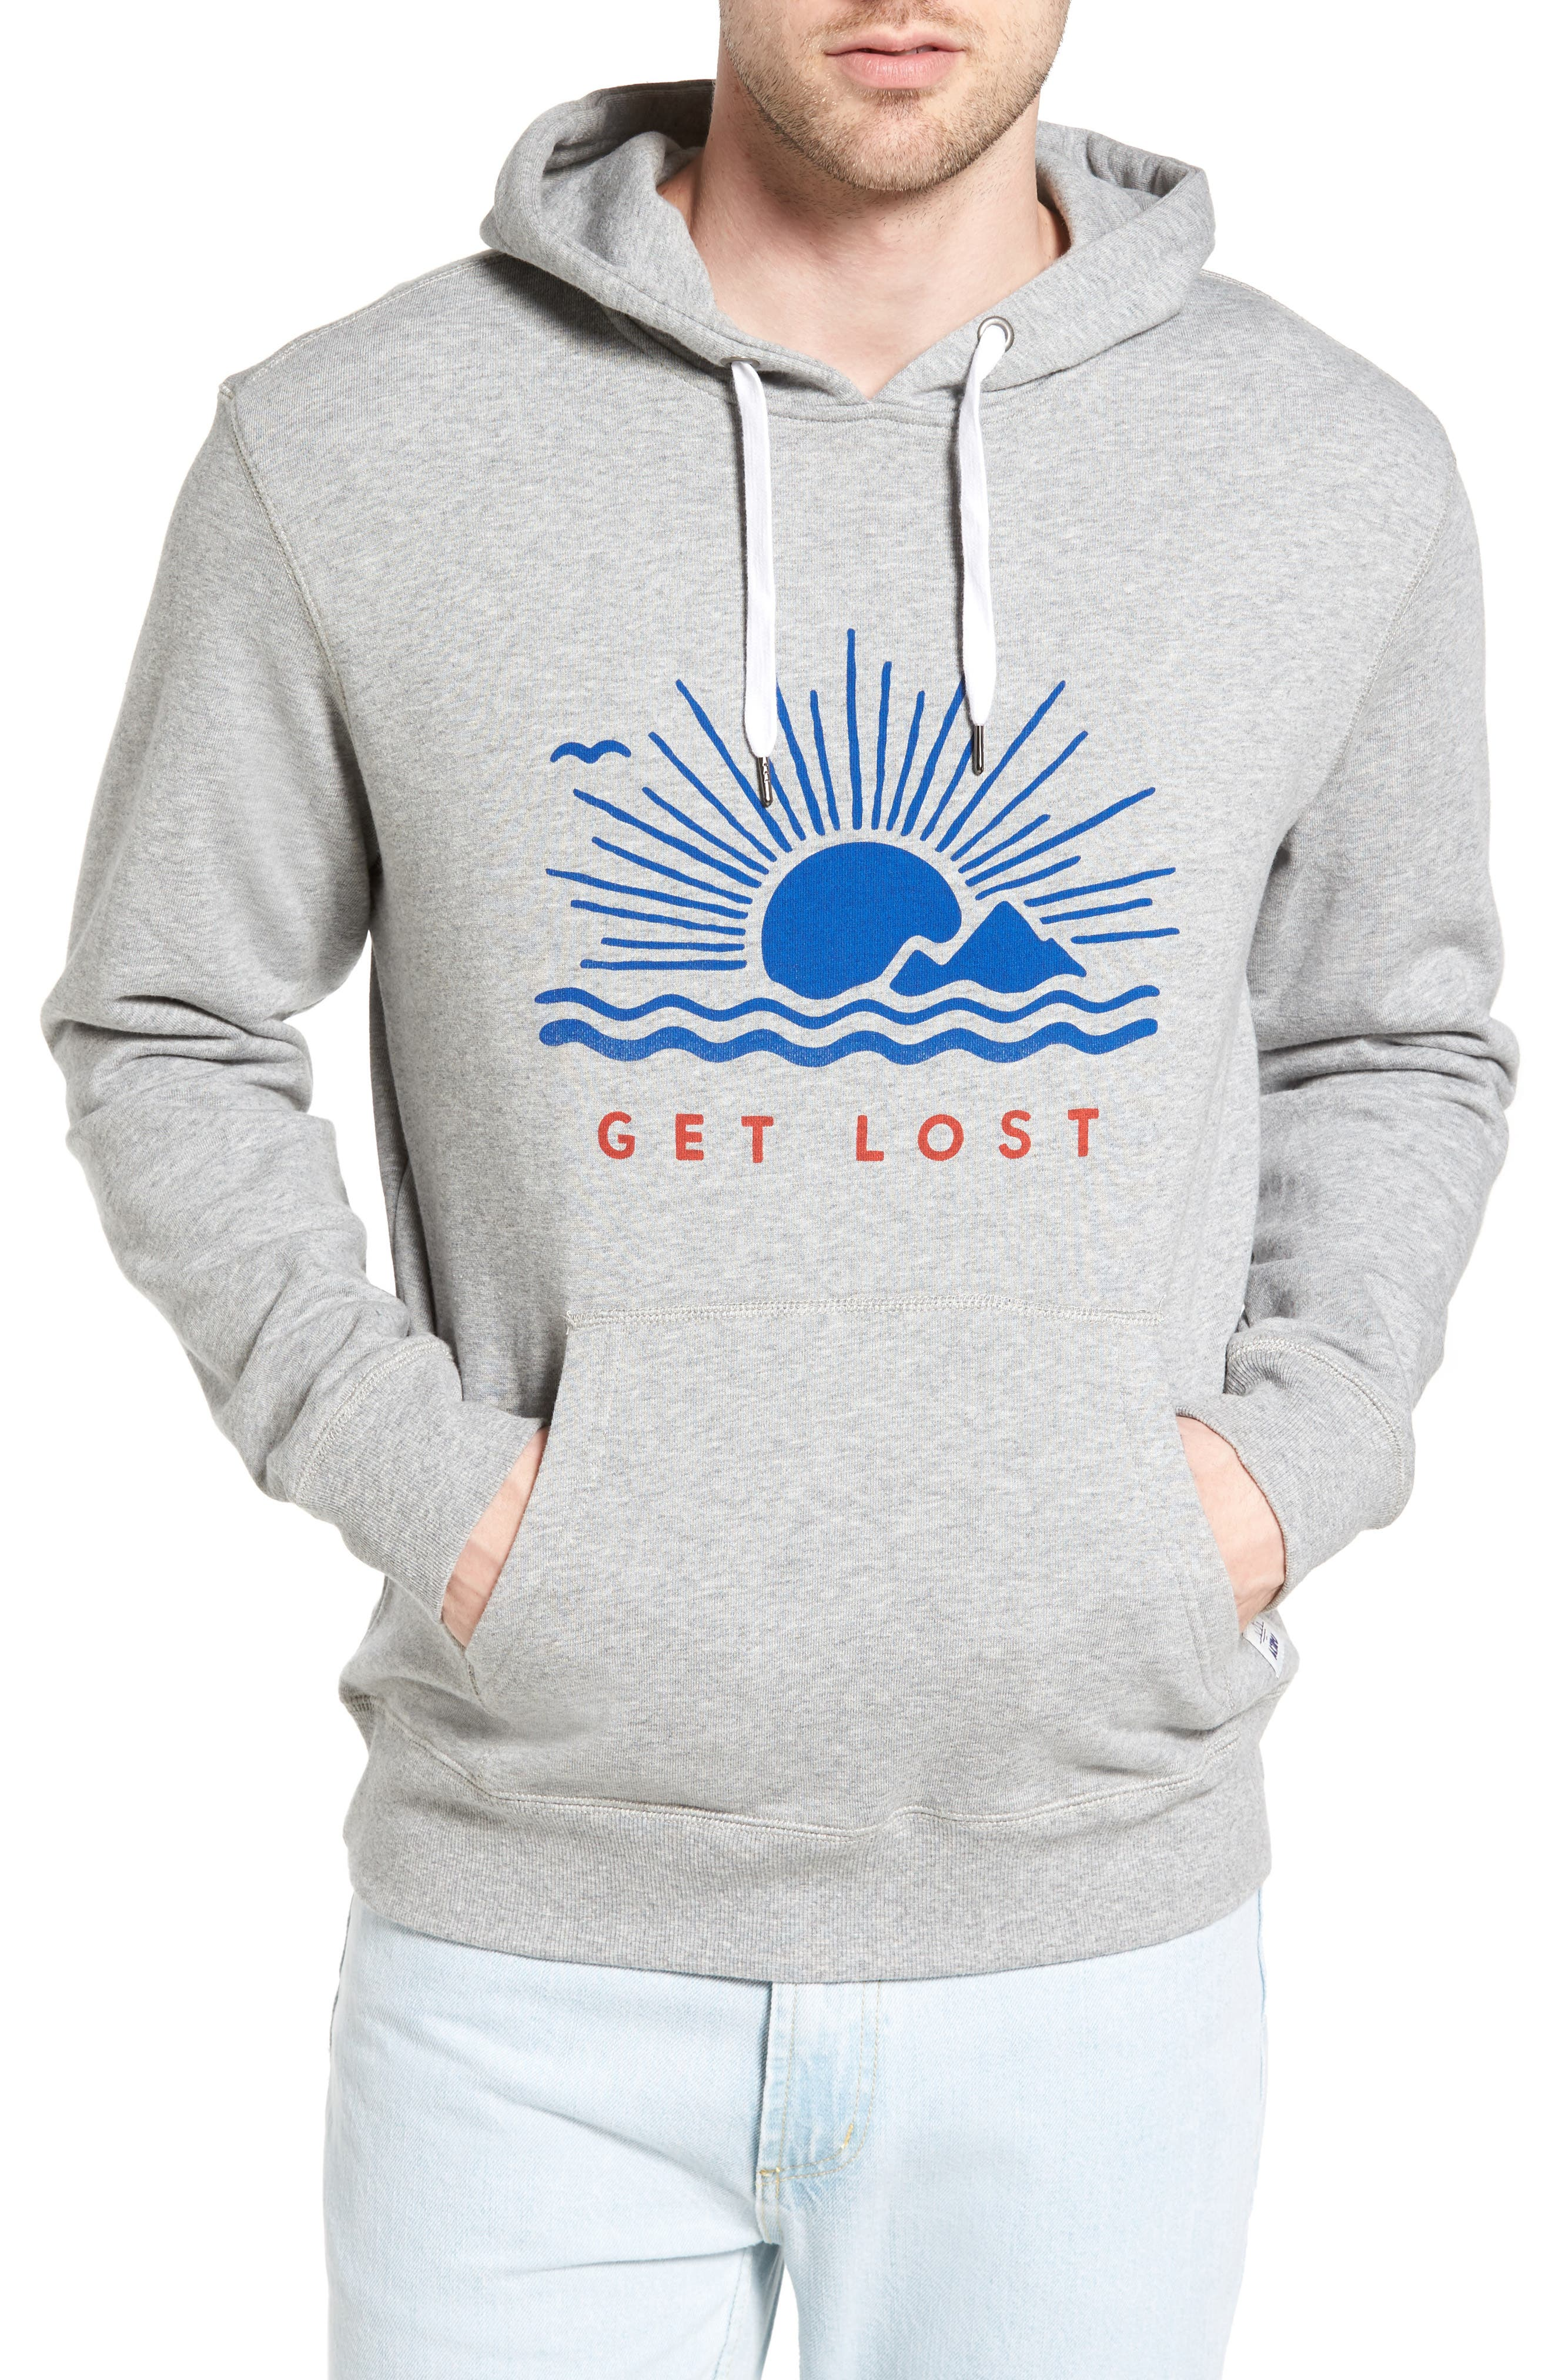 Get Lost French Terry Hoodie,                             Main thumbnail 1, color,                             020